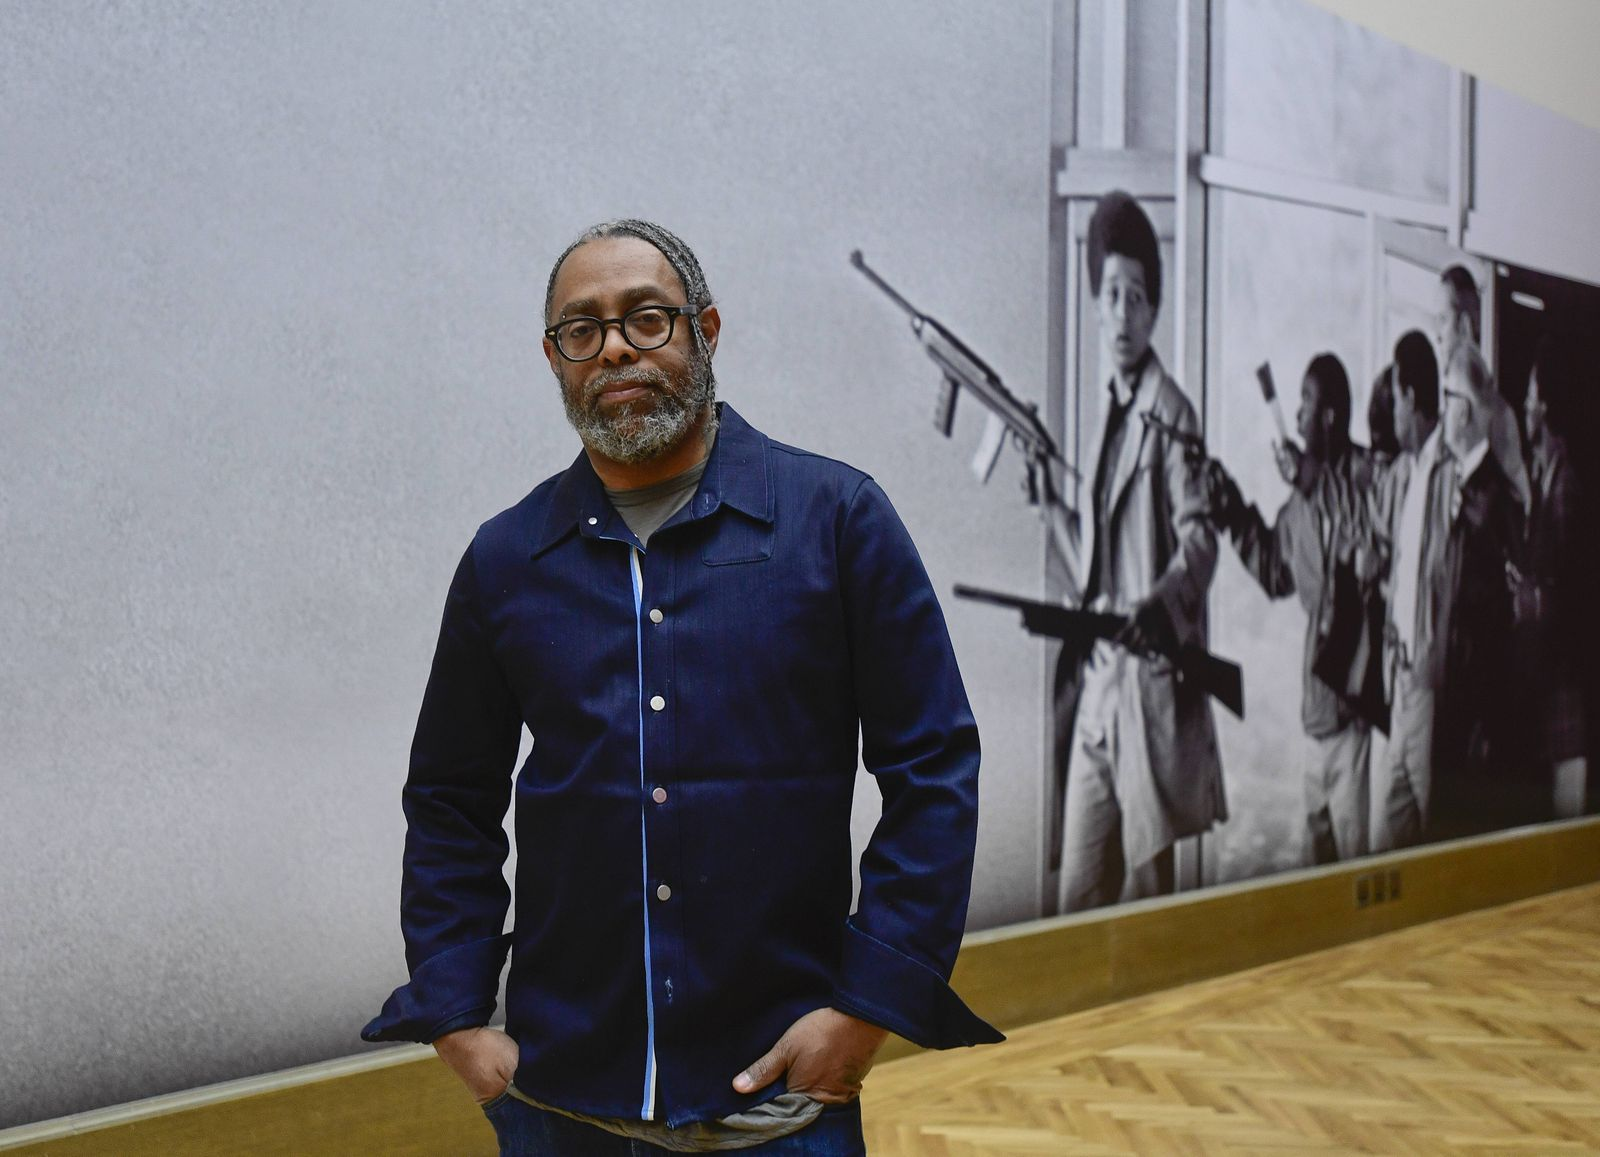 US artist Arthur Jafa poses in front of a part of the A Series of Utterly Improbable Yet Extraordin